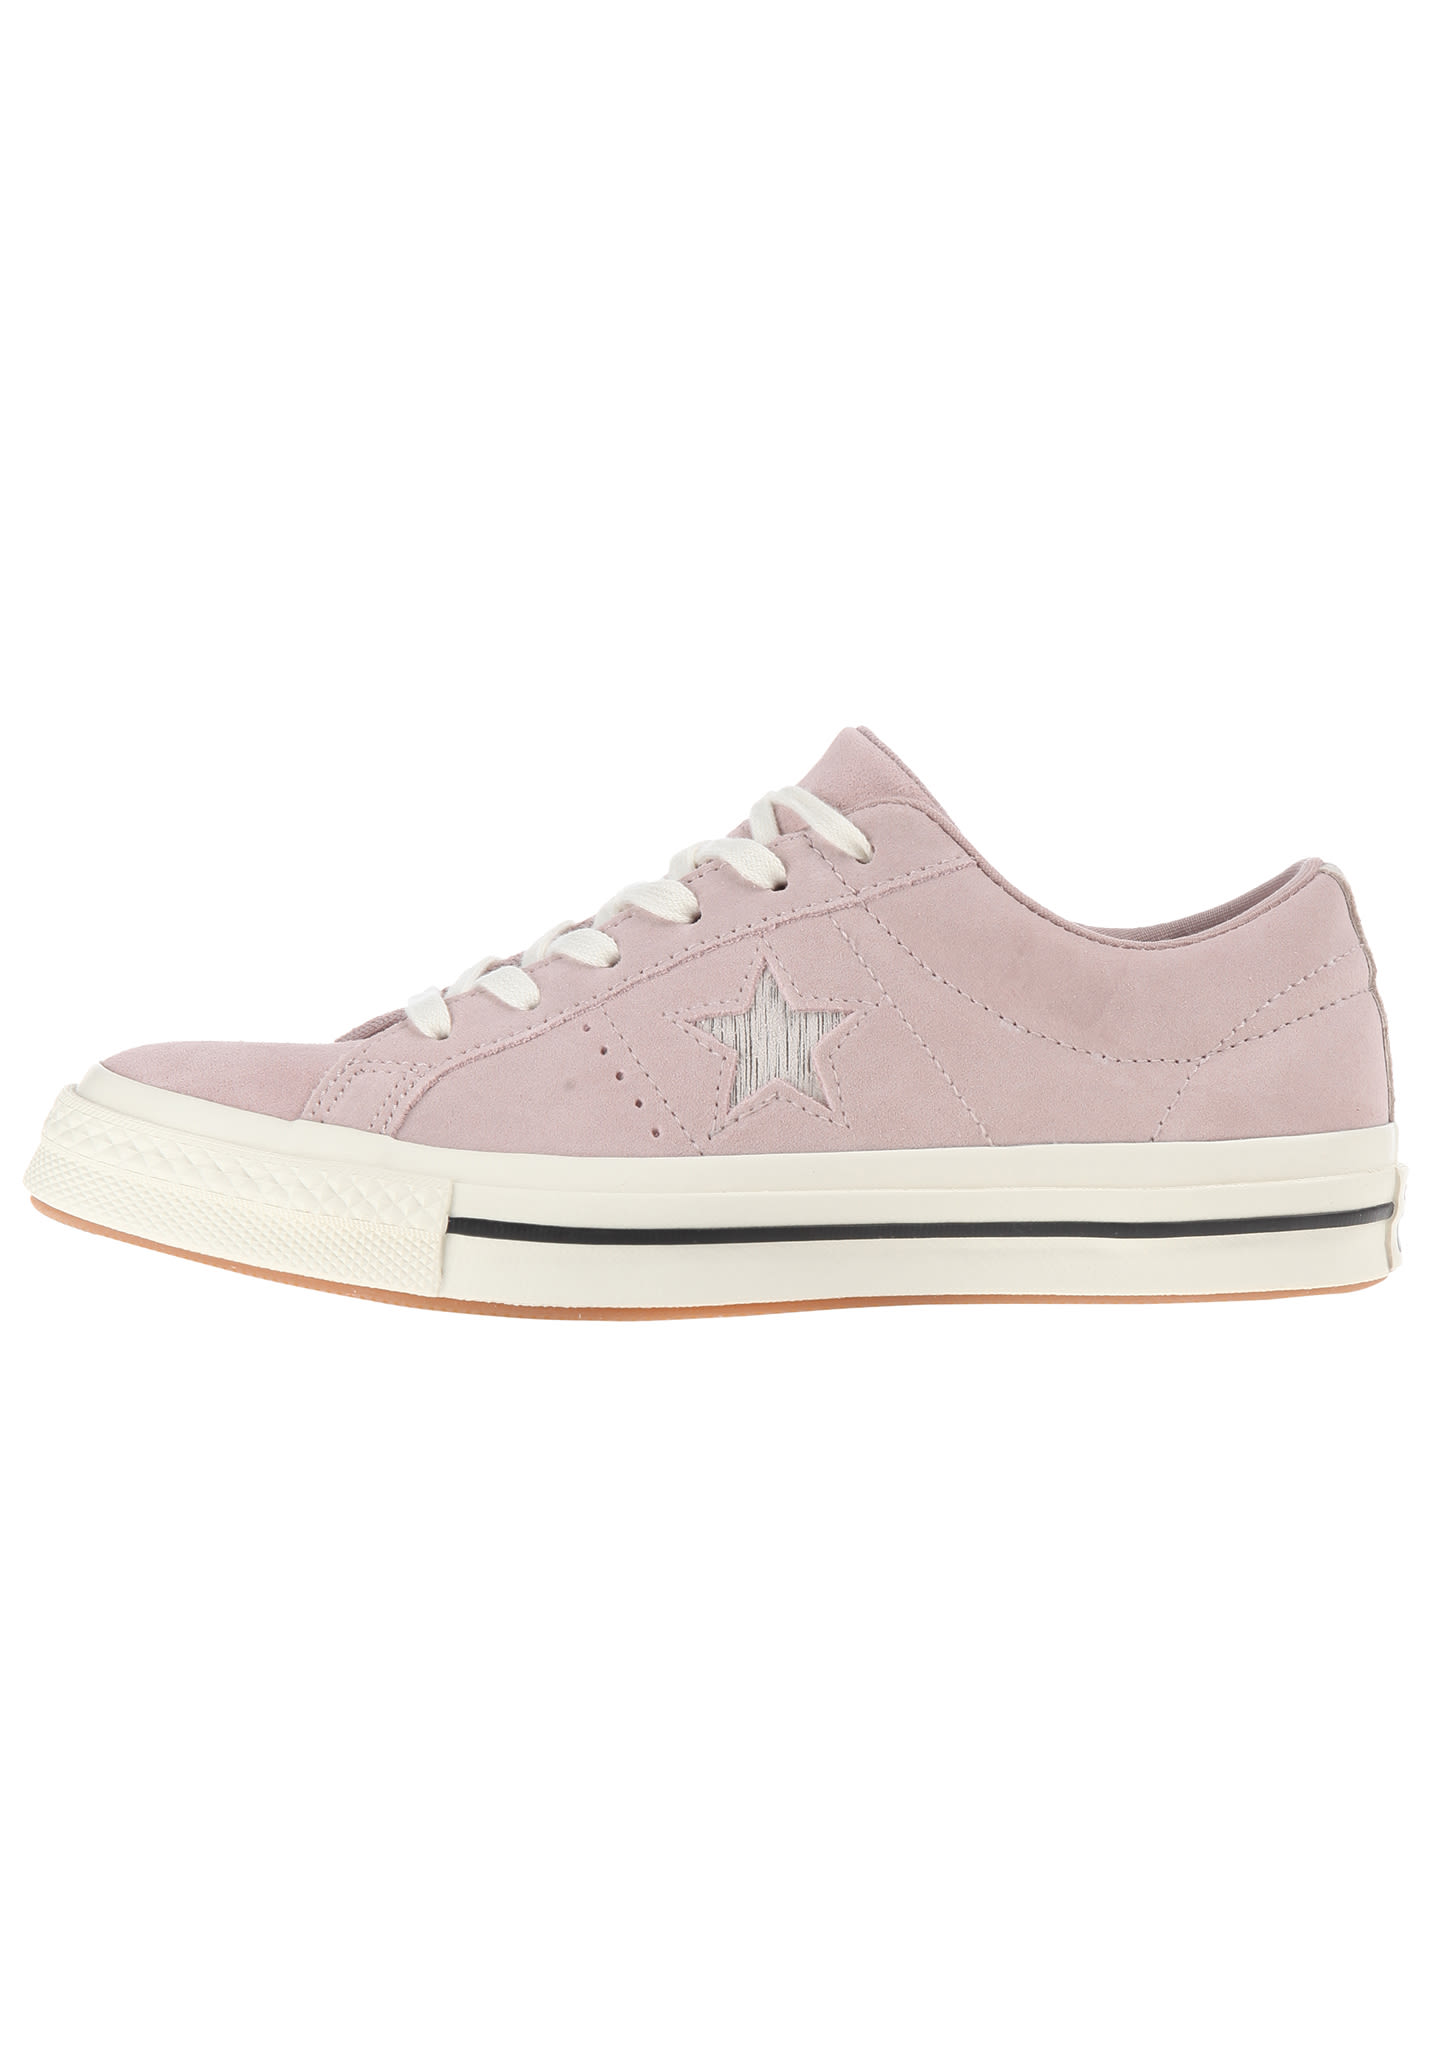 16f19dd2d6 Converse One Star Ox - Sneakers for Women - Pink - Planet Sports